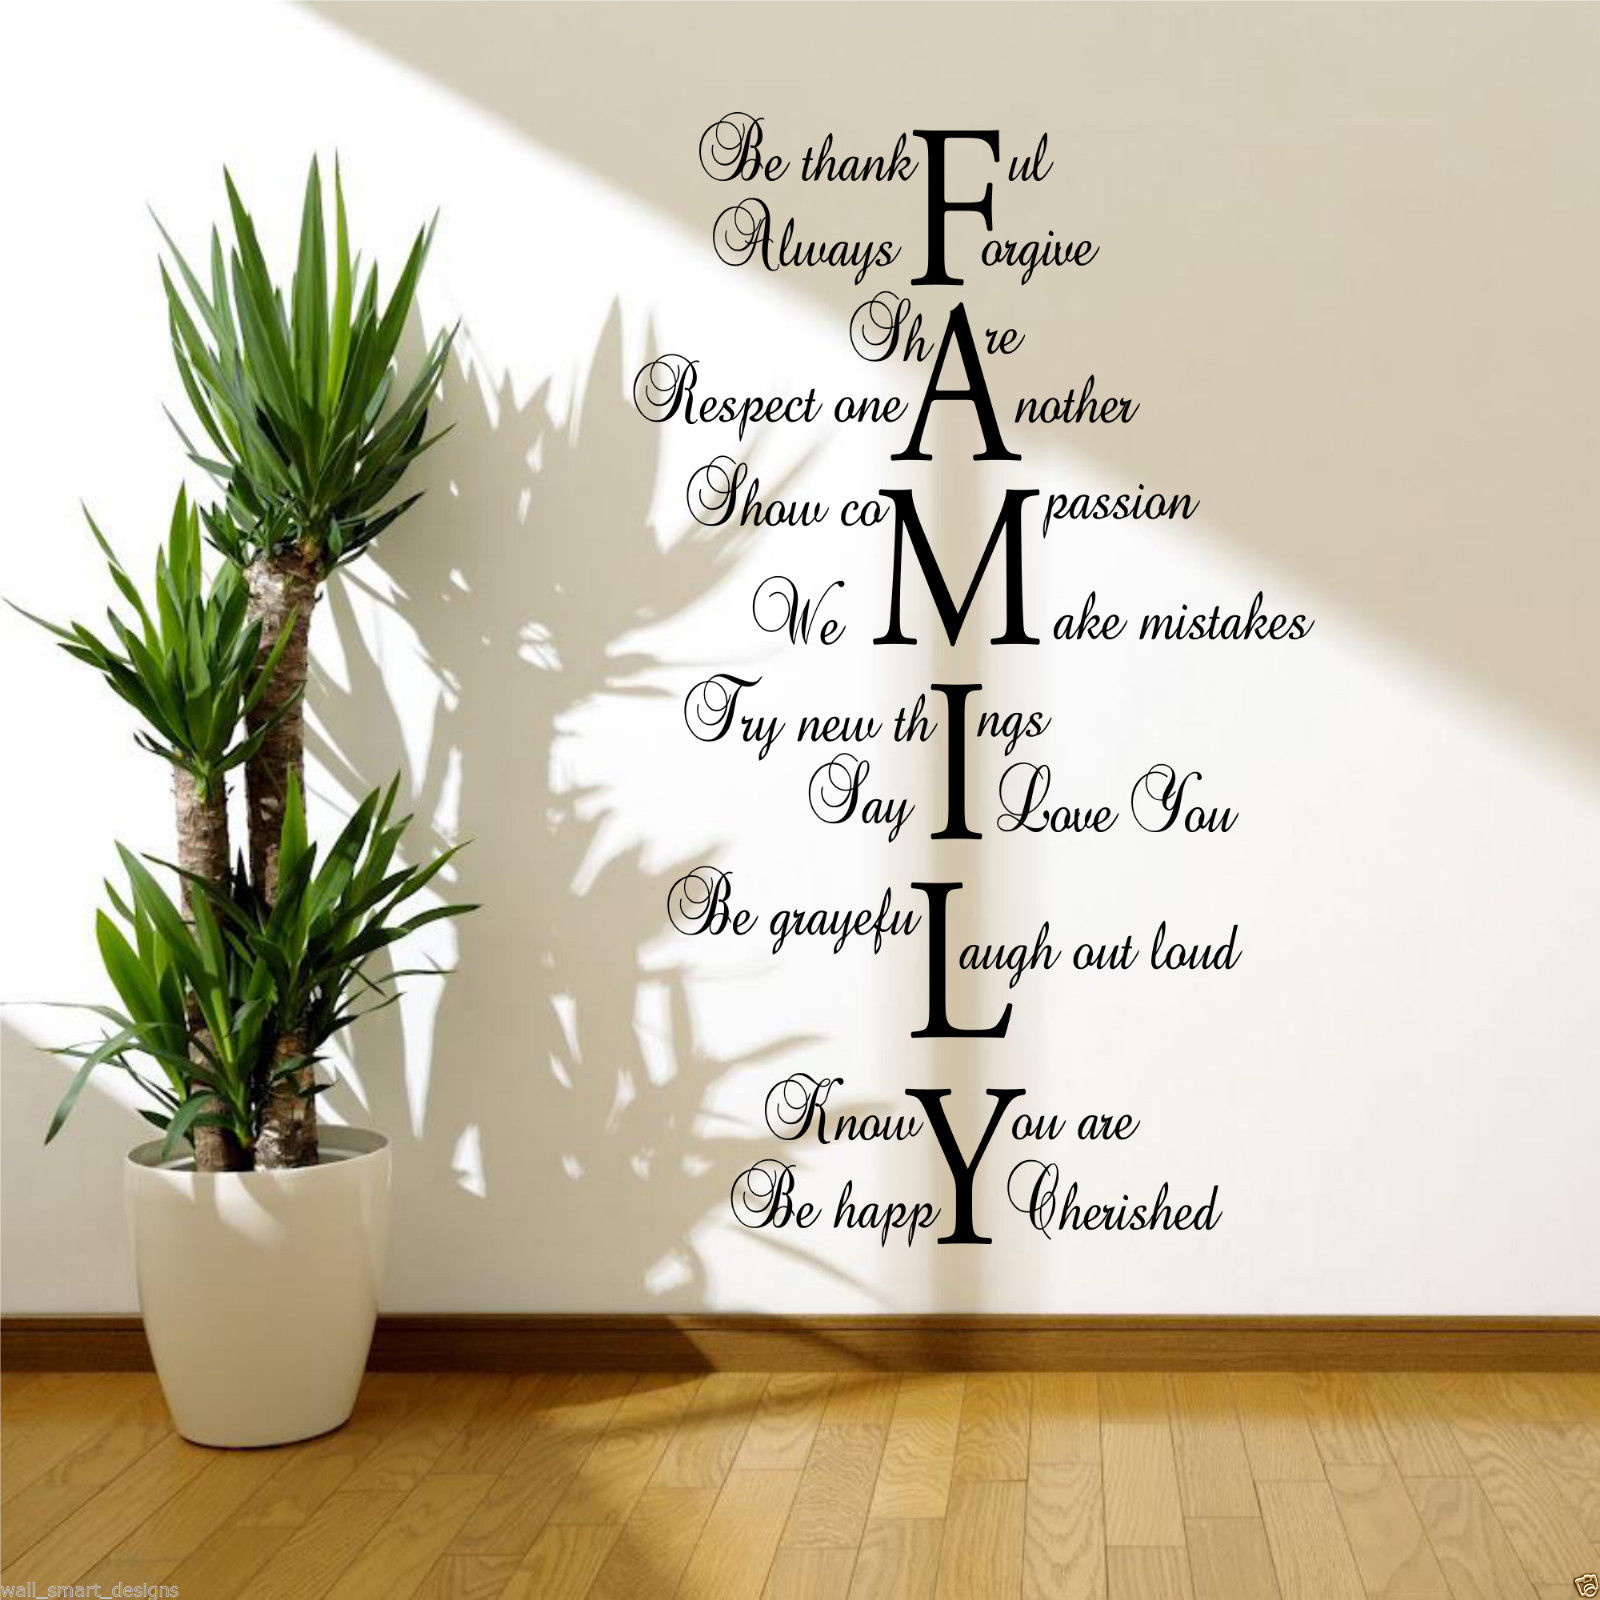 Family love life wall art sticker quote room decal mural transfer image is loading family love life wall art sticker quote room amipublicfo Choice Image